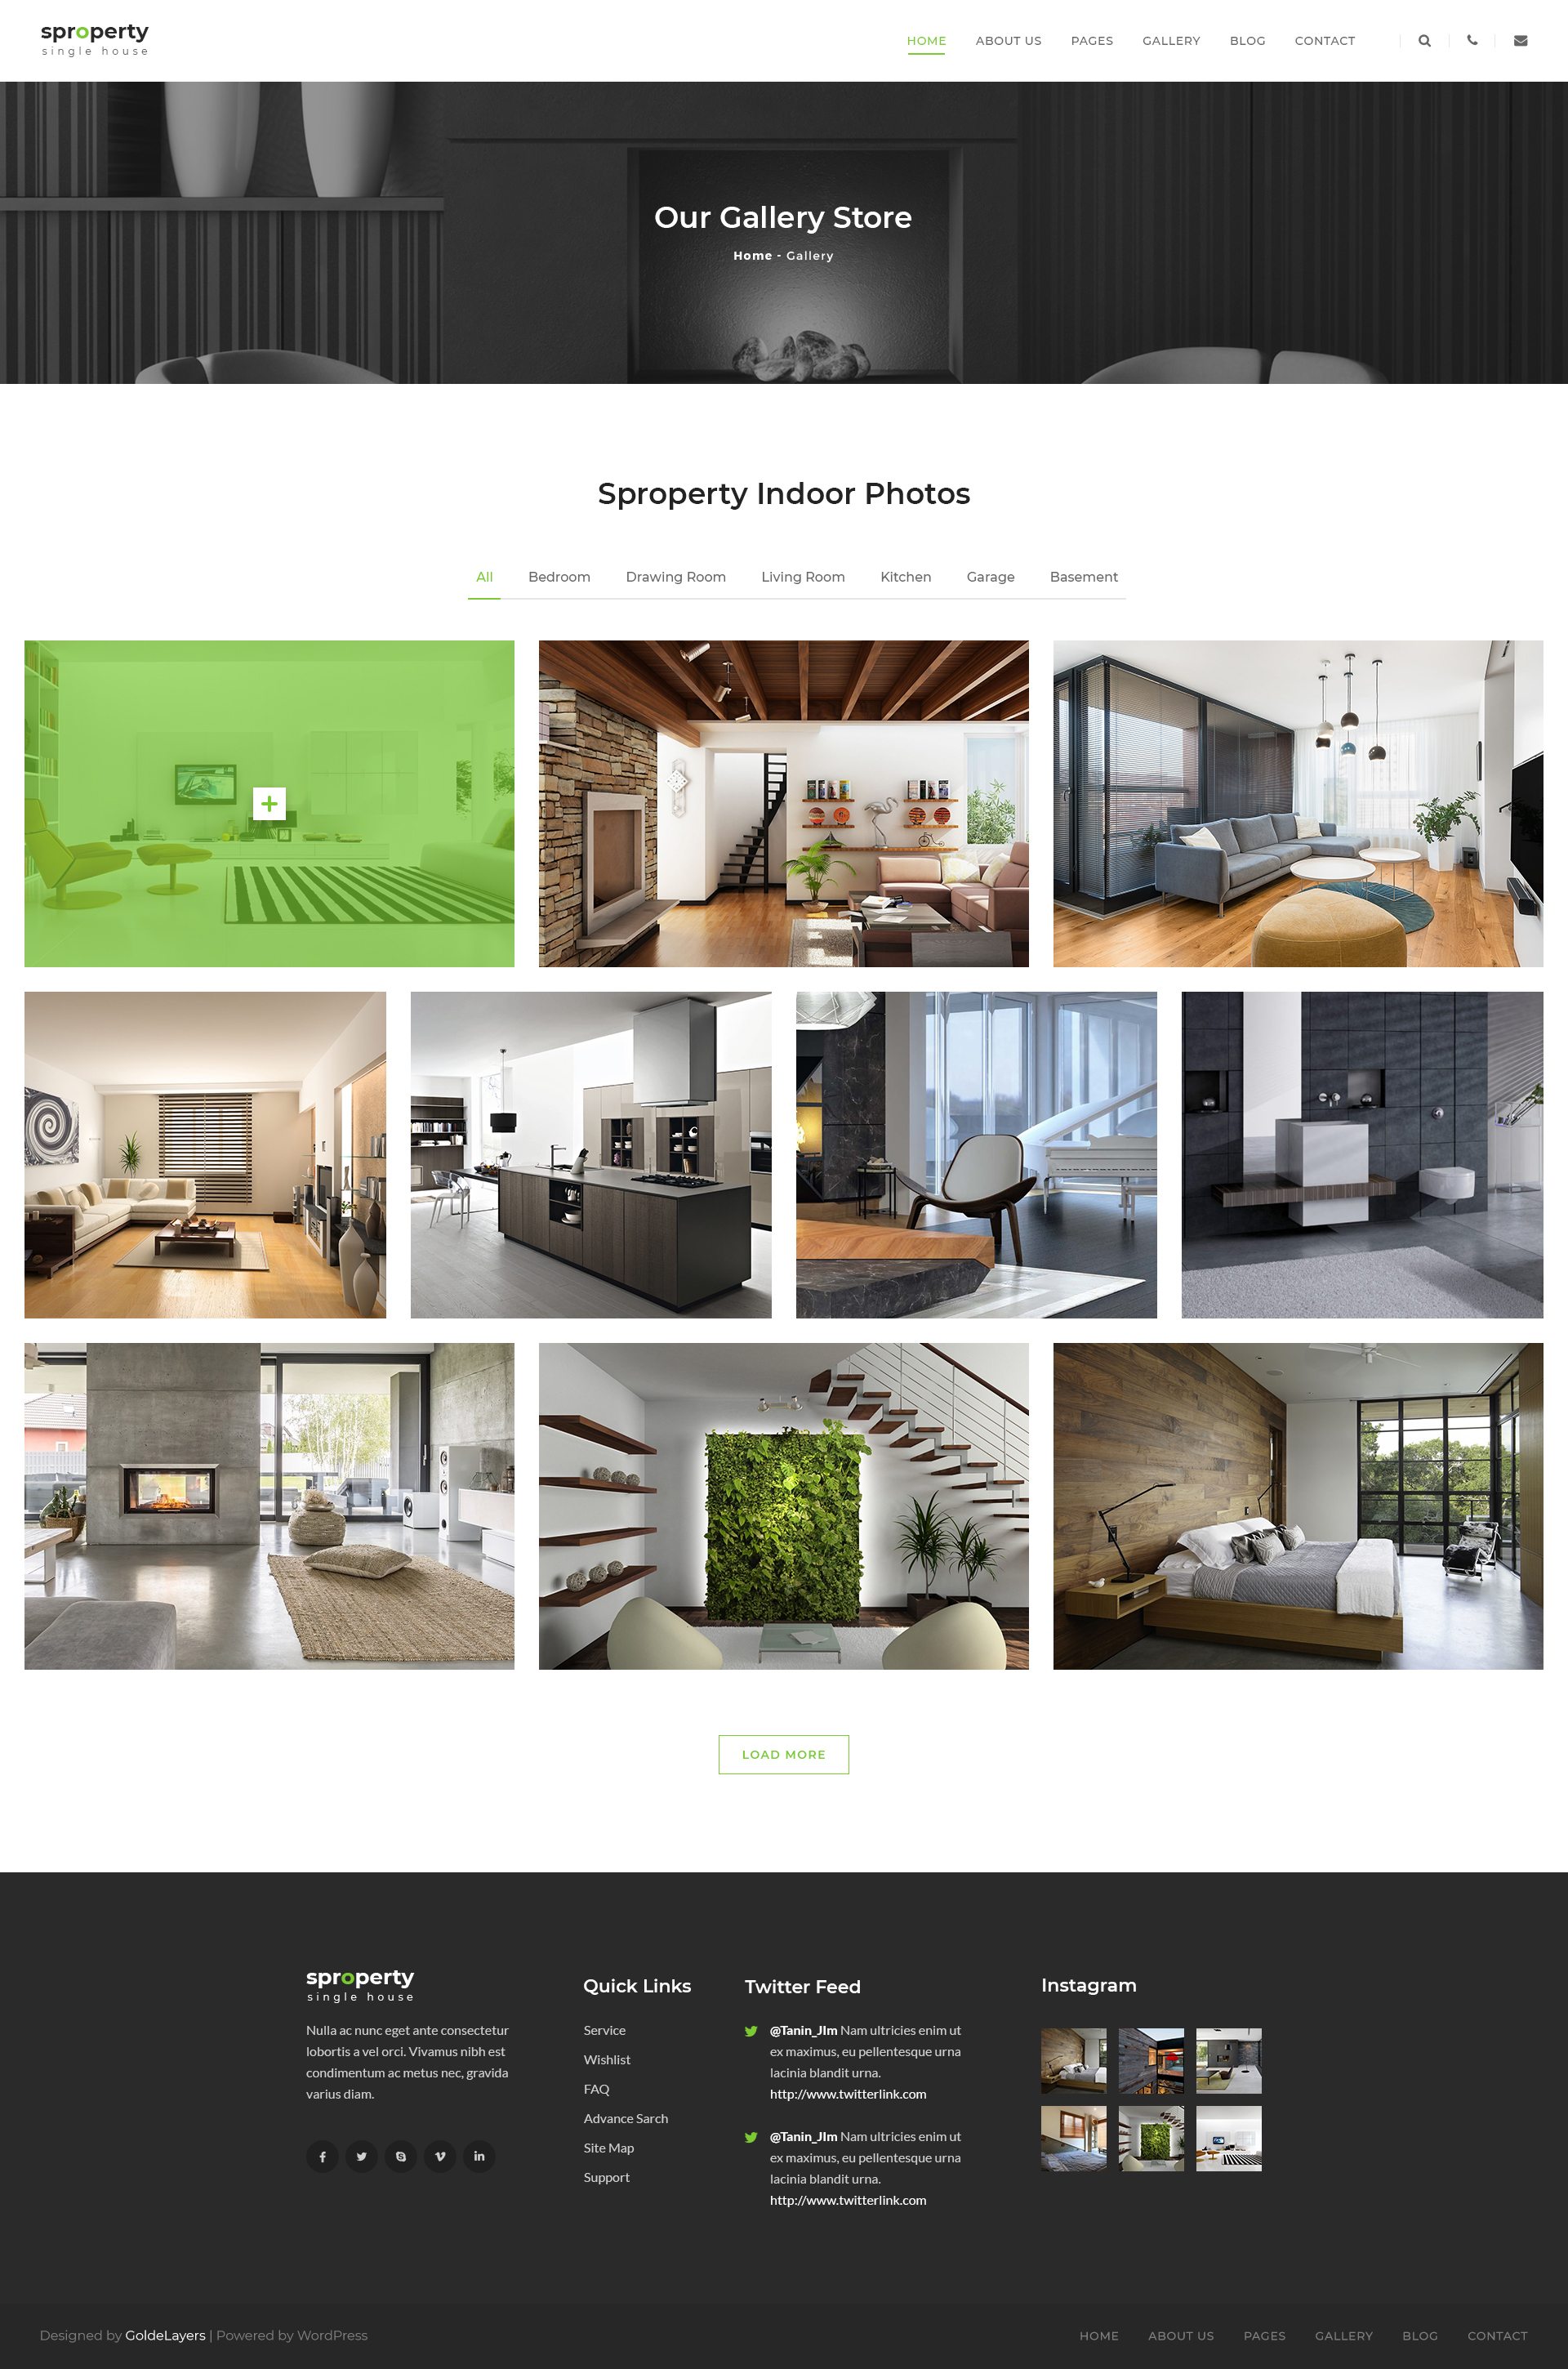 Sproperty - Single Property Real Estate PSD Template by GoldenLayers